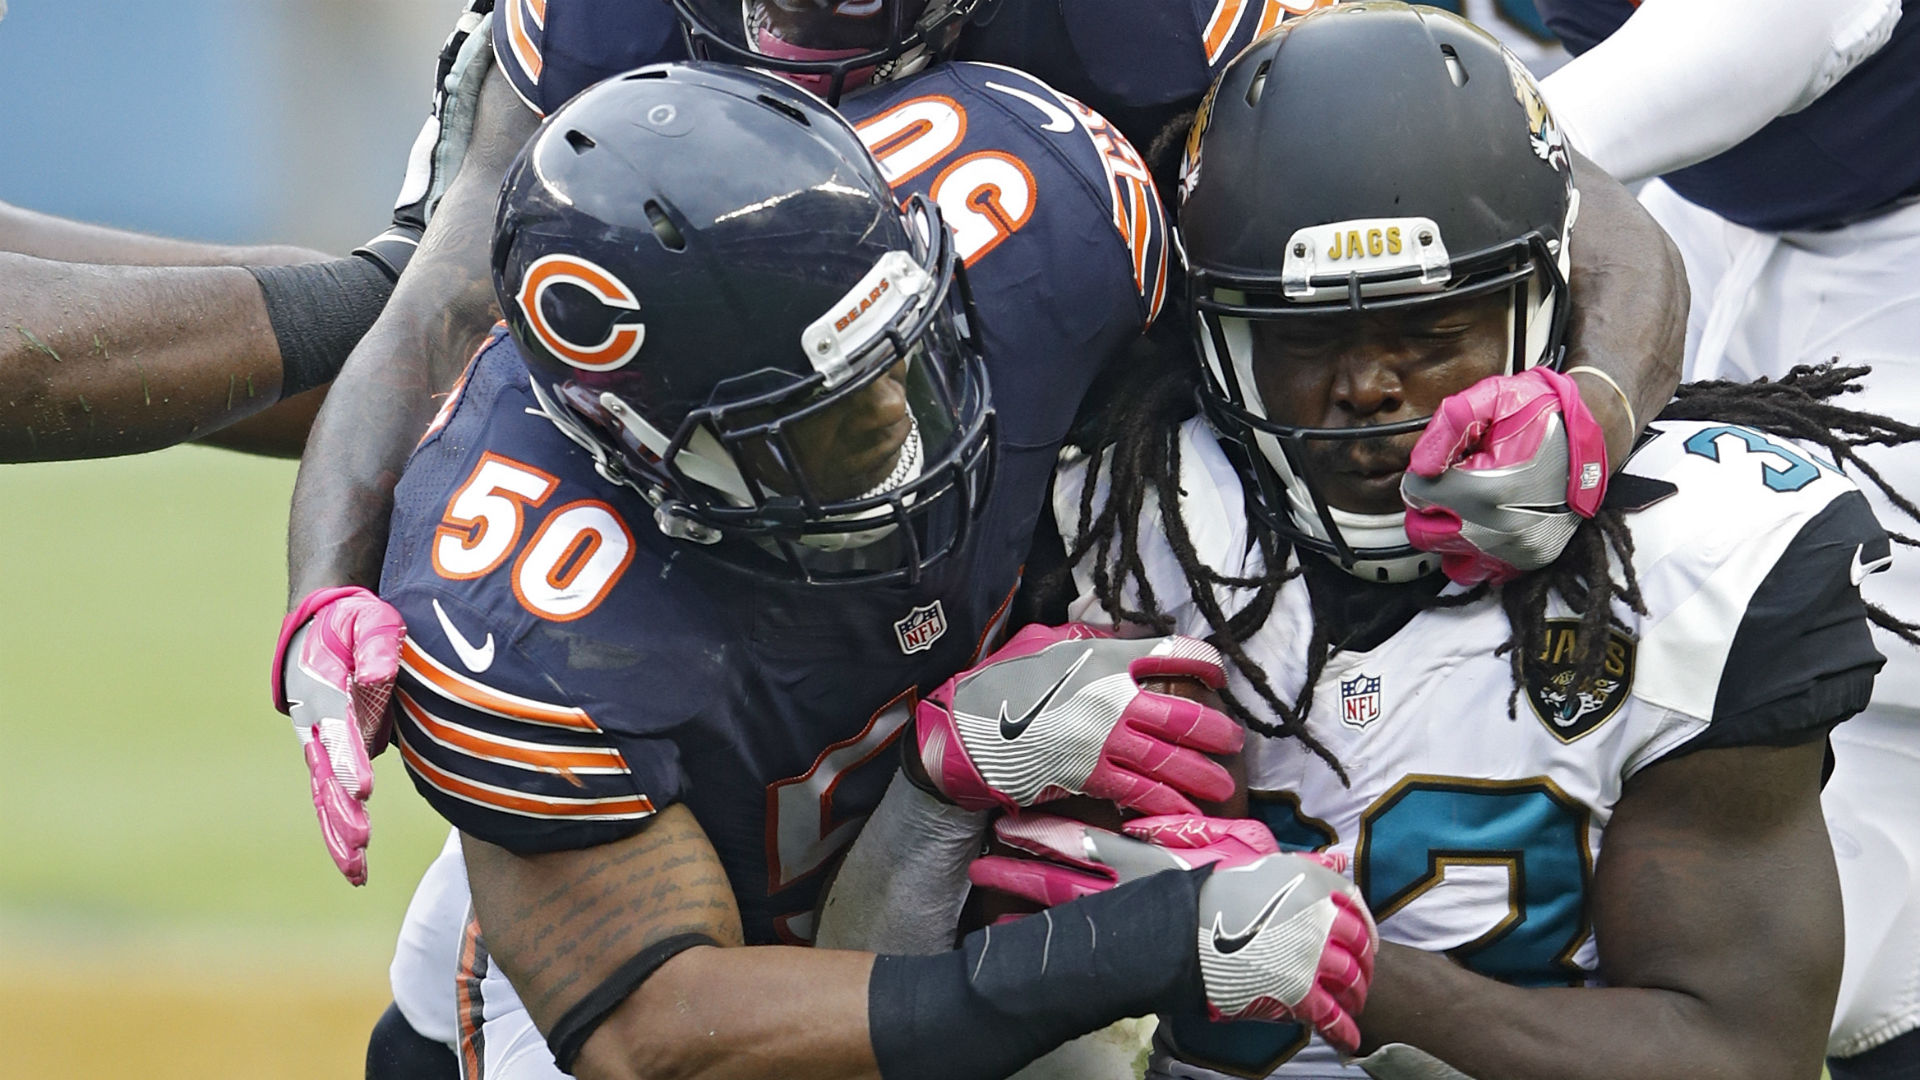 Bears Linebacker Saves Man's Life at Austin Airport